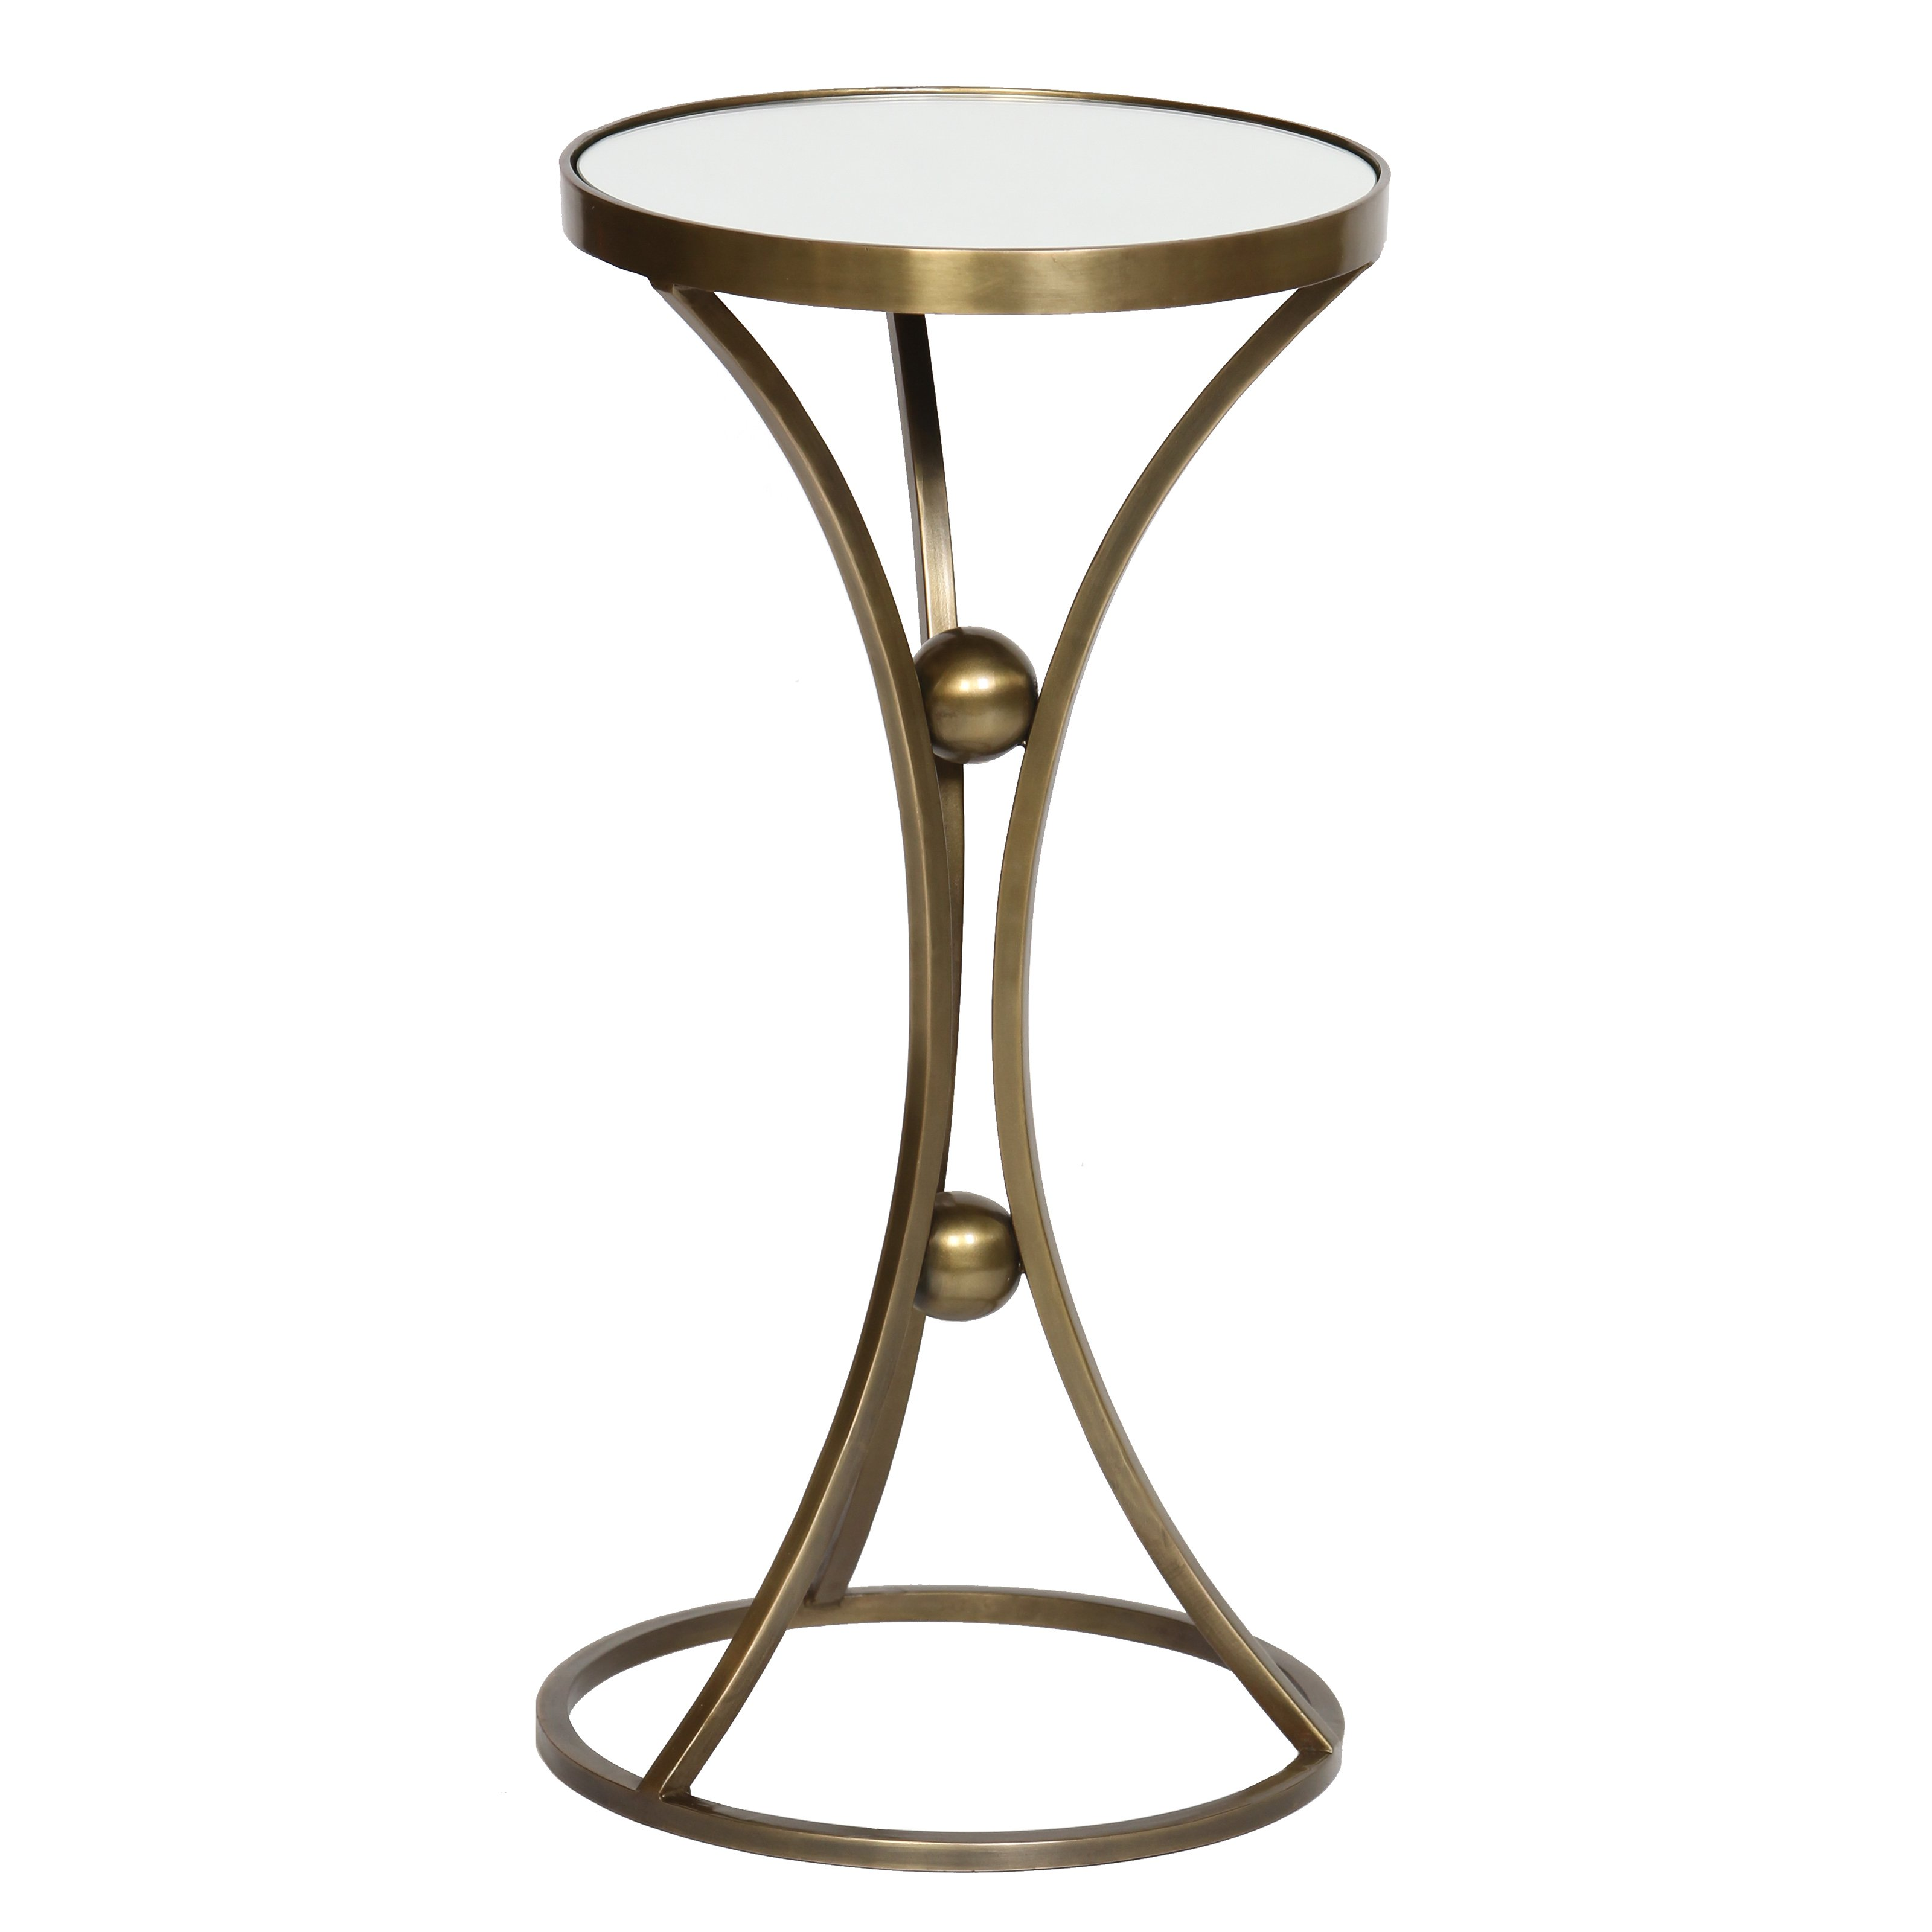 prima legged accent table antique brass bronze black kitchen chairs waterproof tablecloth lobby furniture linen runner decoration ideas small cream coffee pads contemporary wood